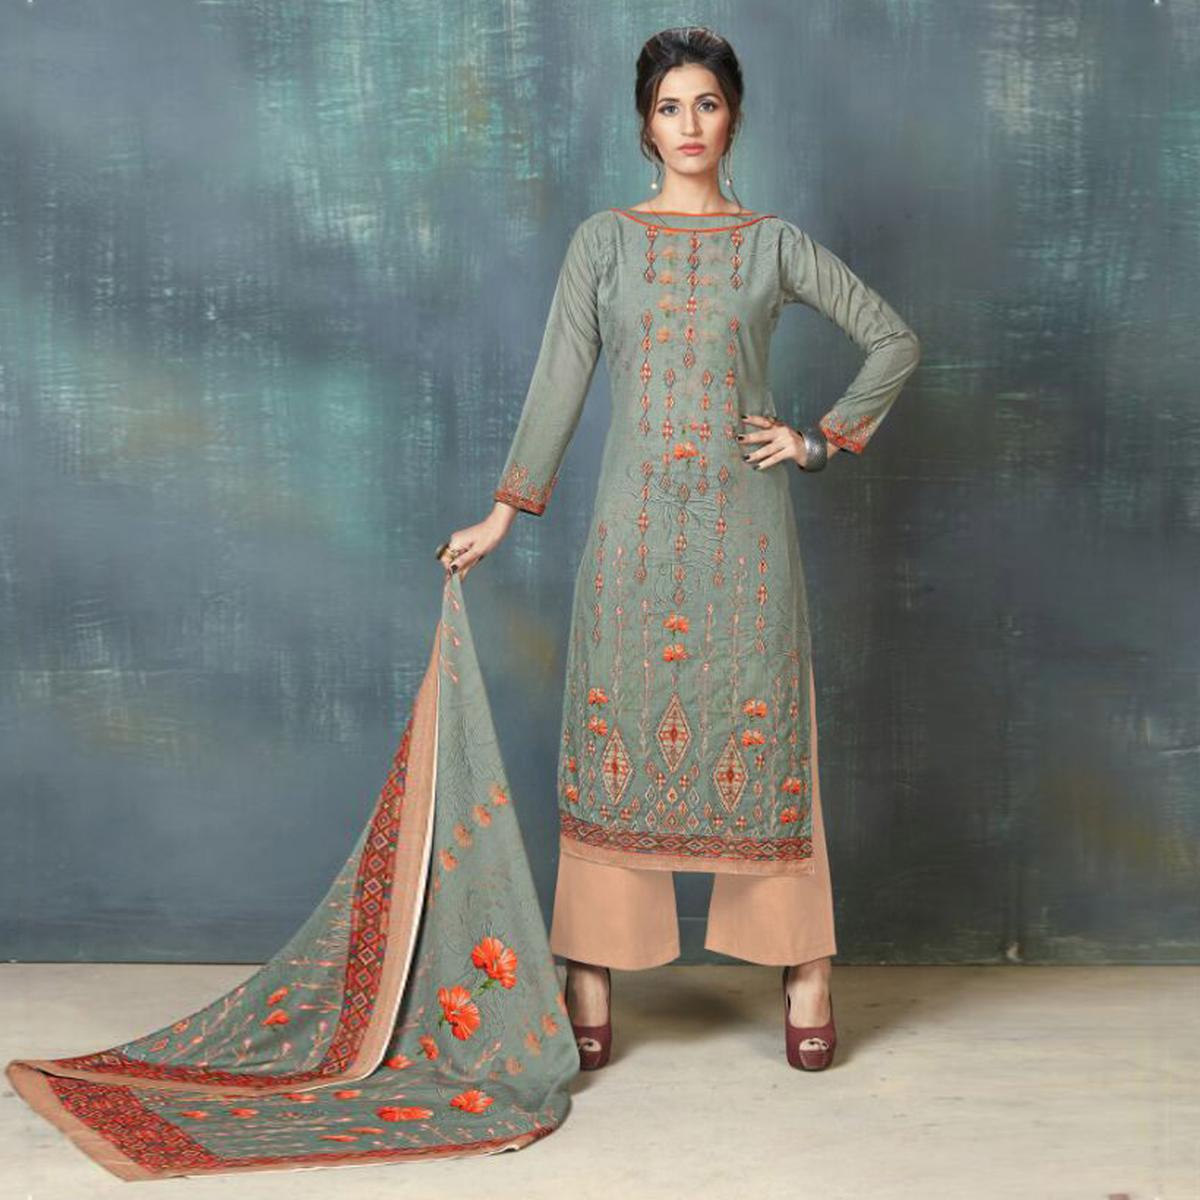 497f435c10 Buy Gorgeous Gray Colored Digital Printed And Embroidered Muslin Cotton  Salwar Suit for womens online India, Best Prices, Reviews - Peachmode